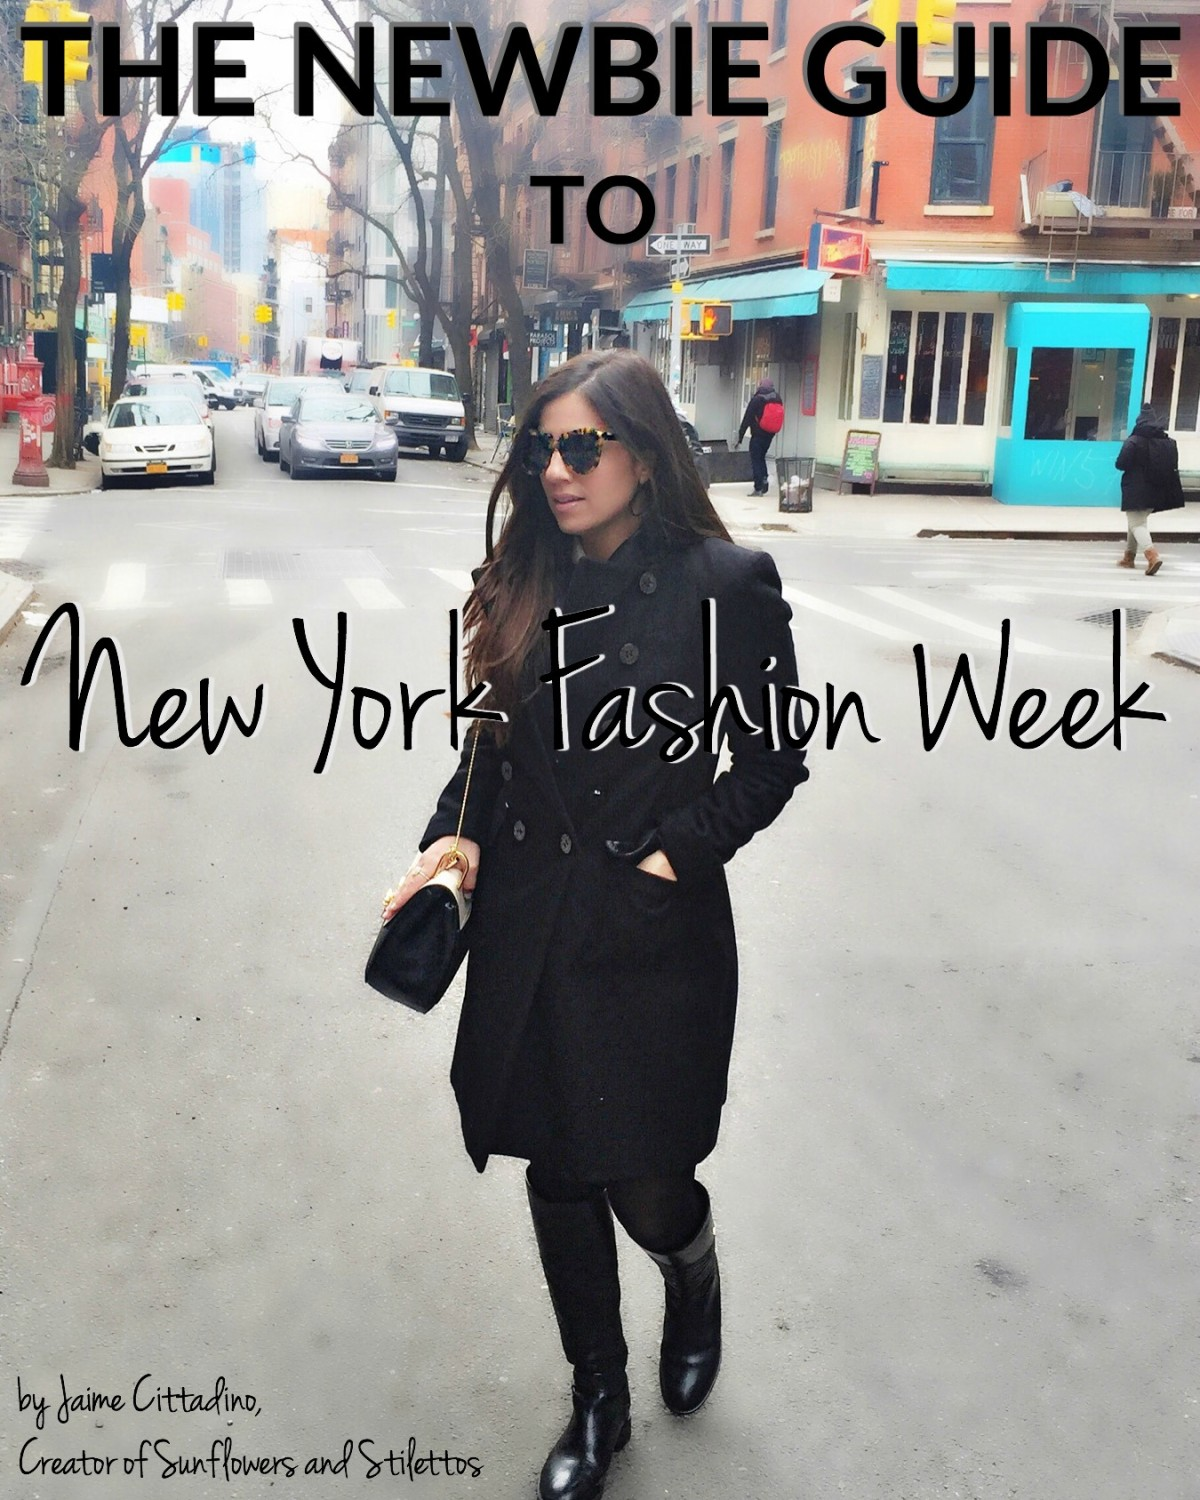 New York Fashion Week Guide